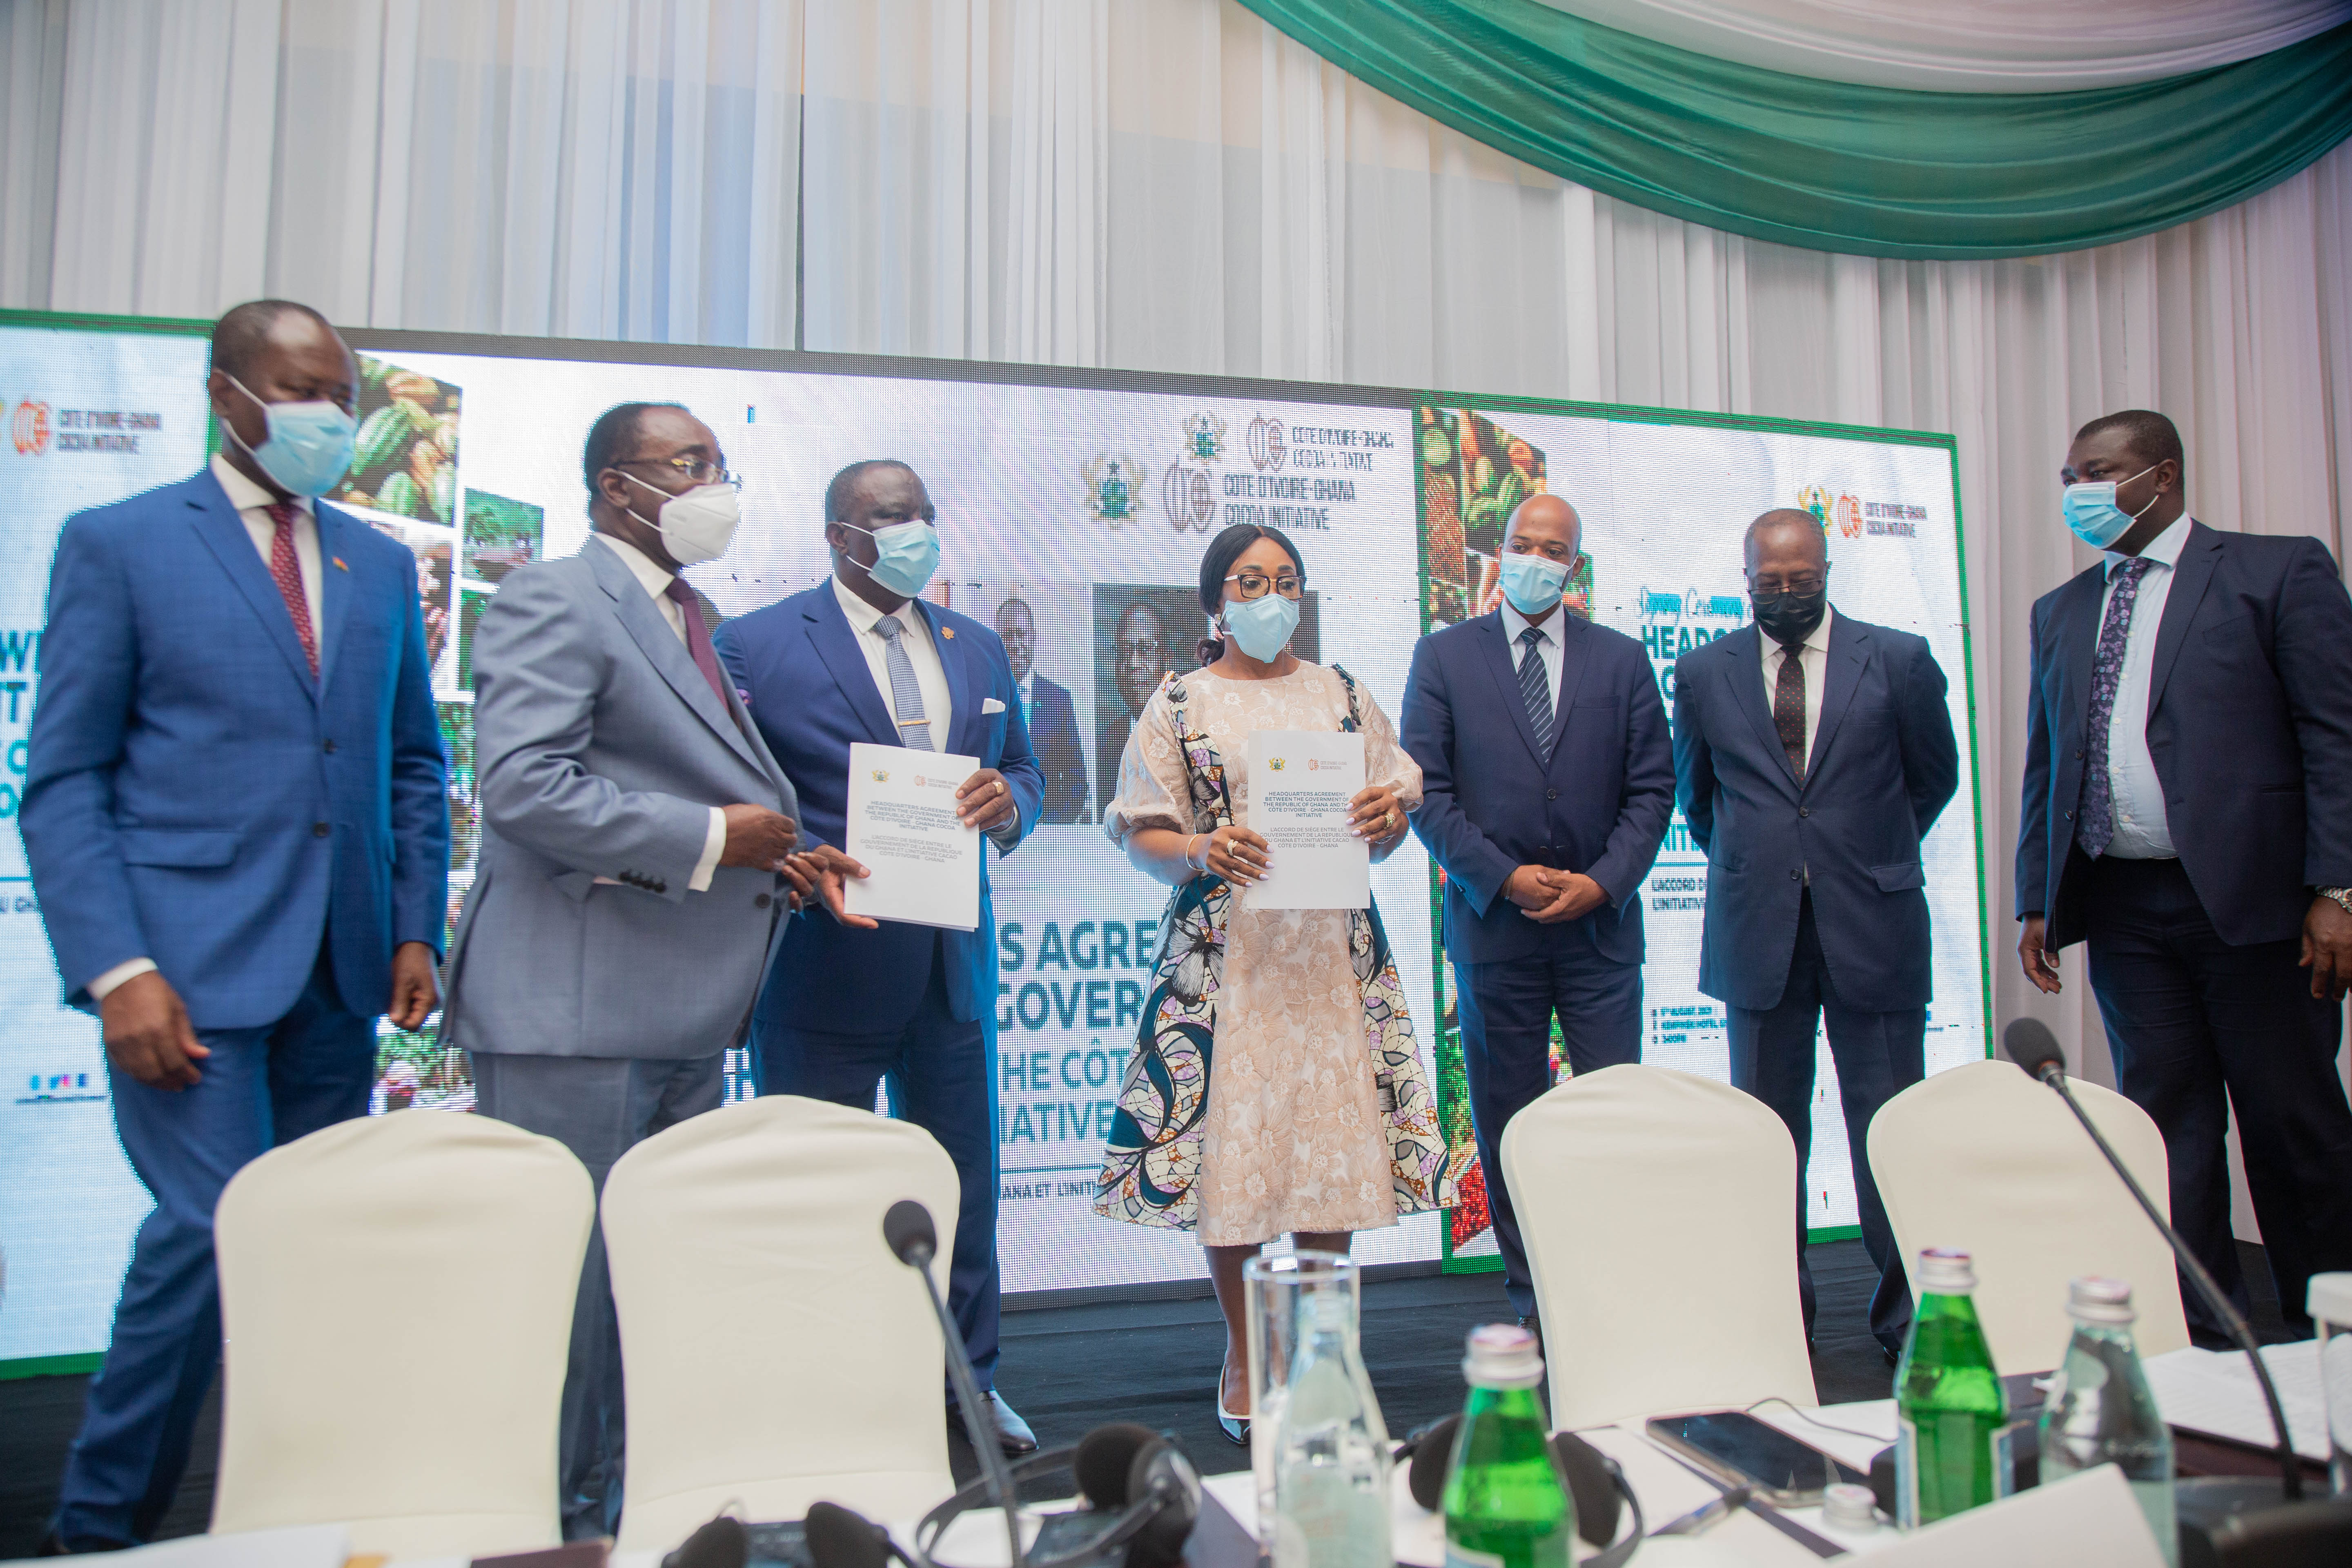 THE SIGNING CEREMONY OF THE HEADQUARTERS AGREEMENT BETWEEN THE GOVERNMENT OF GHANA AND THE COTE D'IVOIRE - GHANA COCOA INITIATIVE